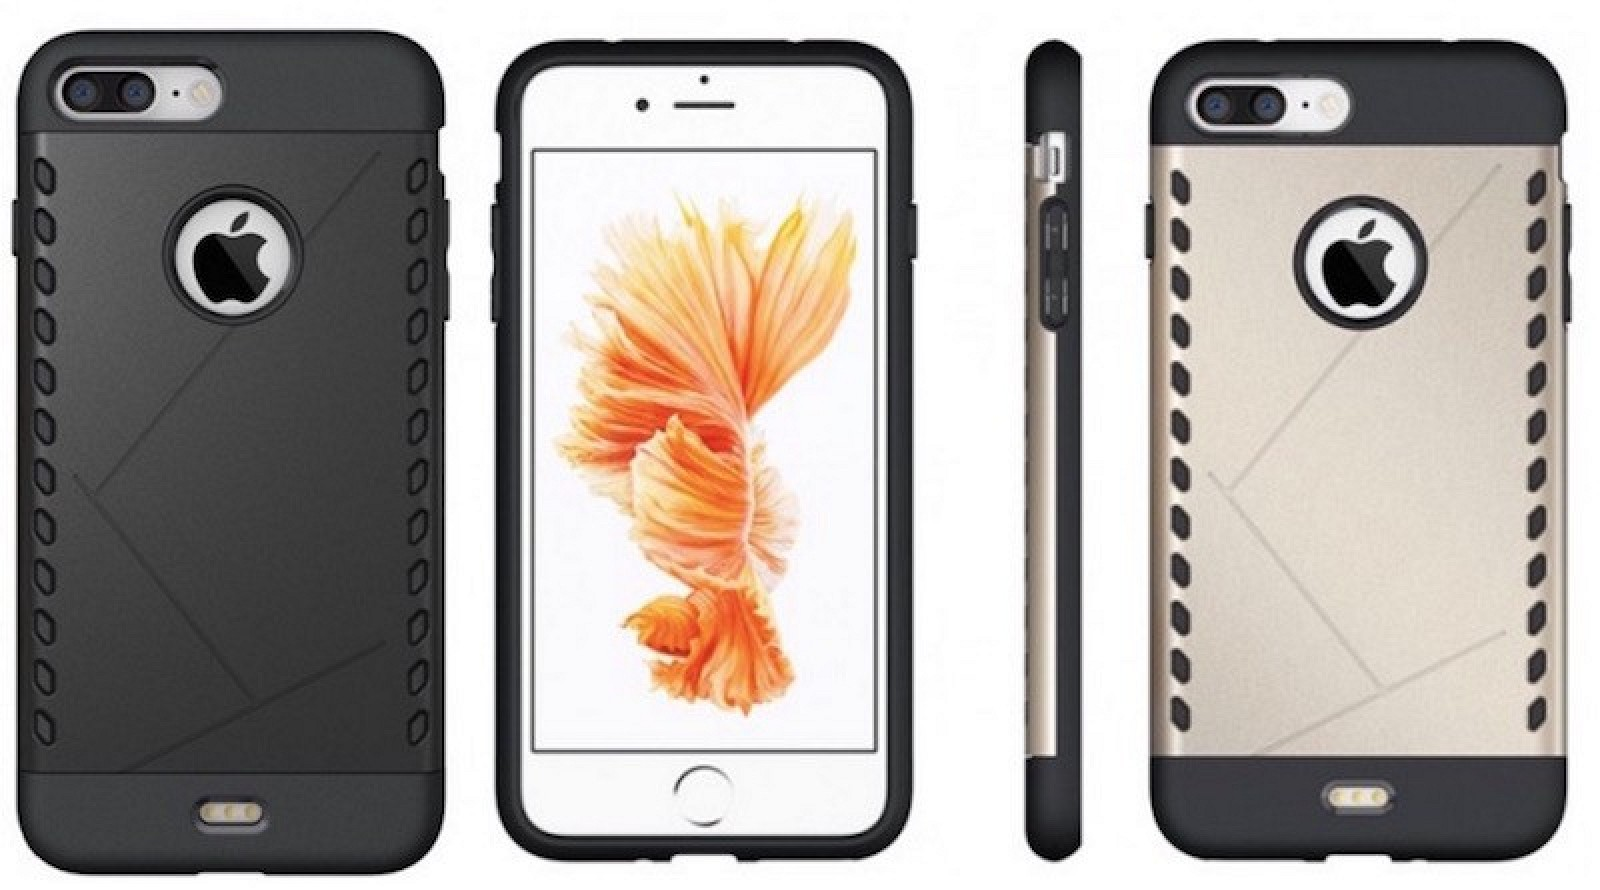 Third Party Iphone 7 Plus Cases Continue Debate Over Smart